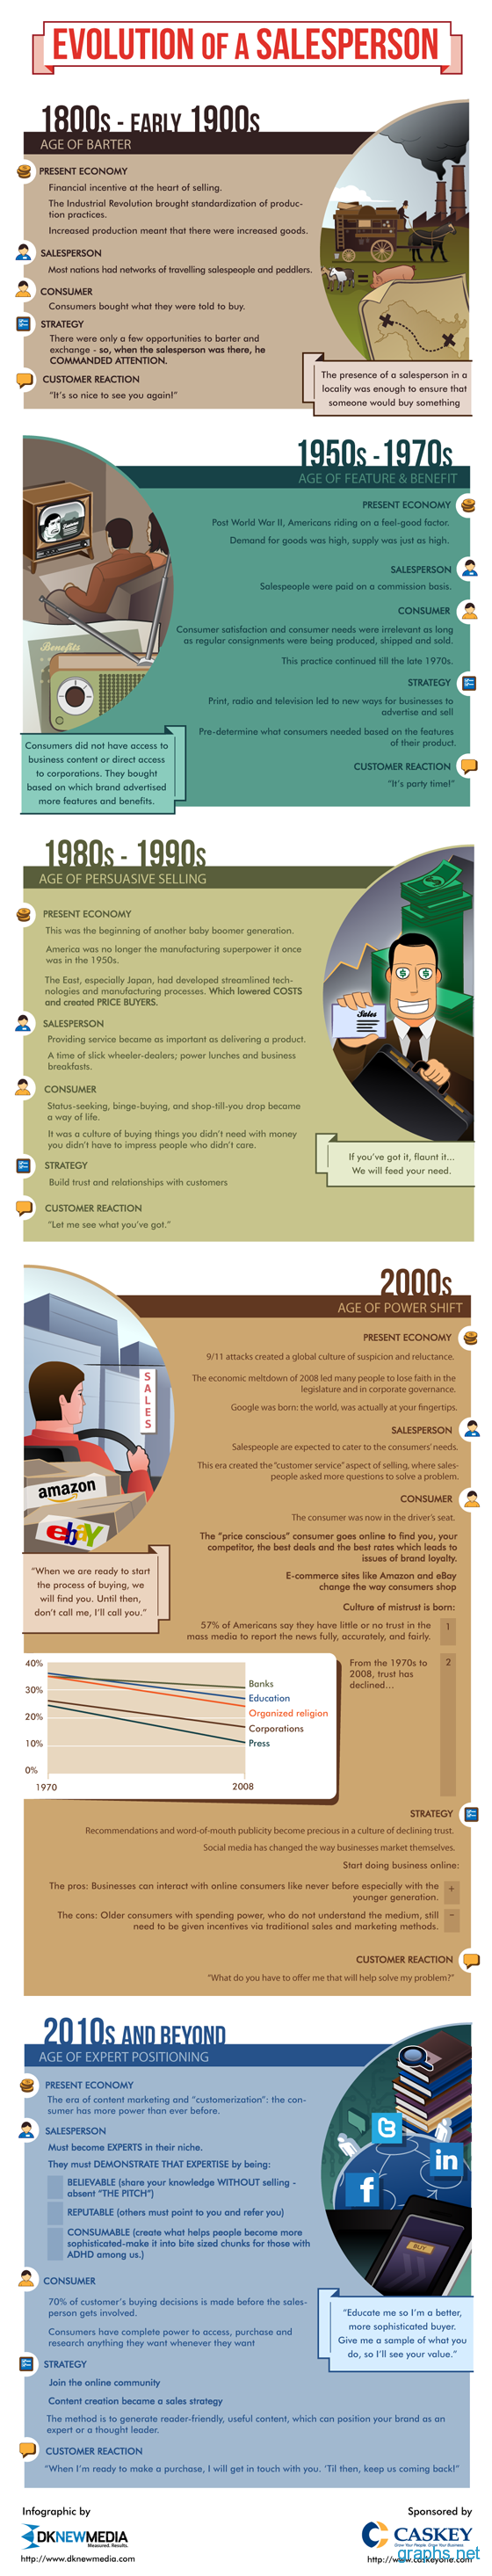 History of a Salesperson